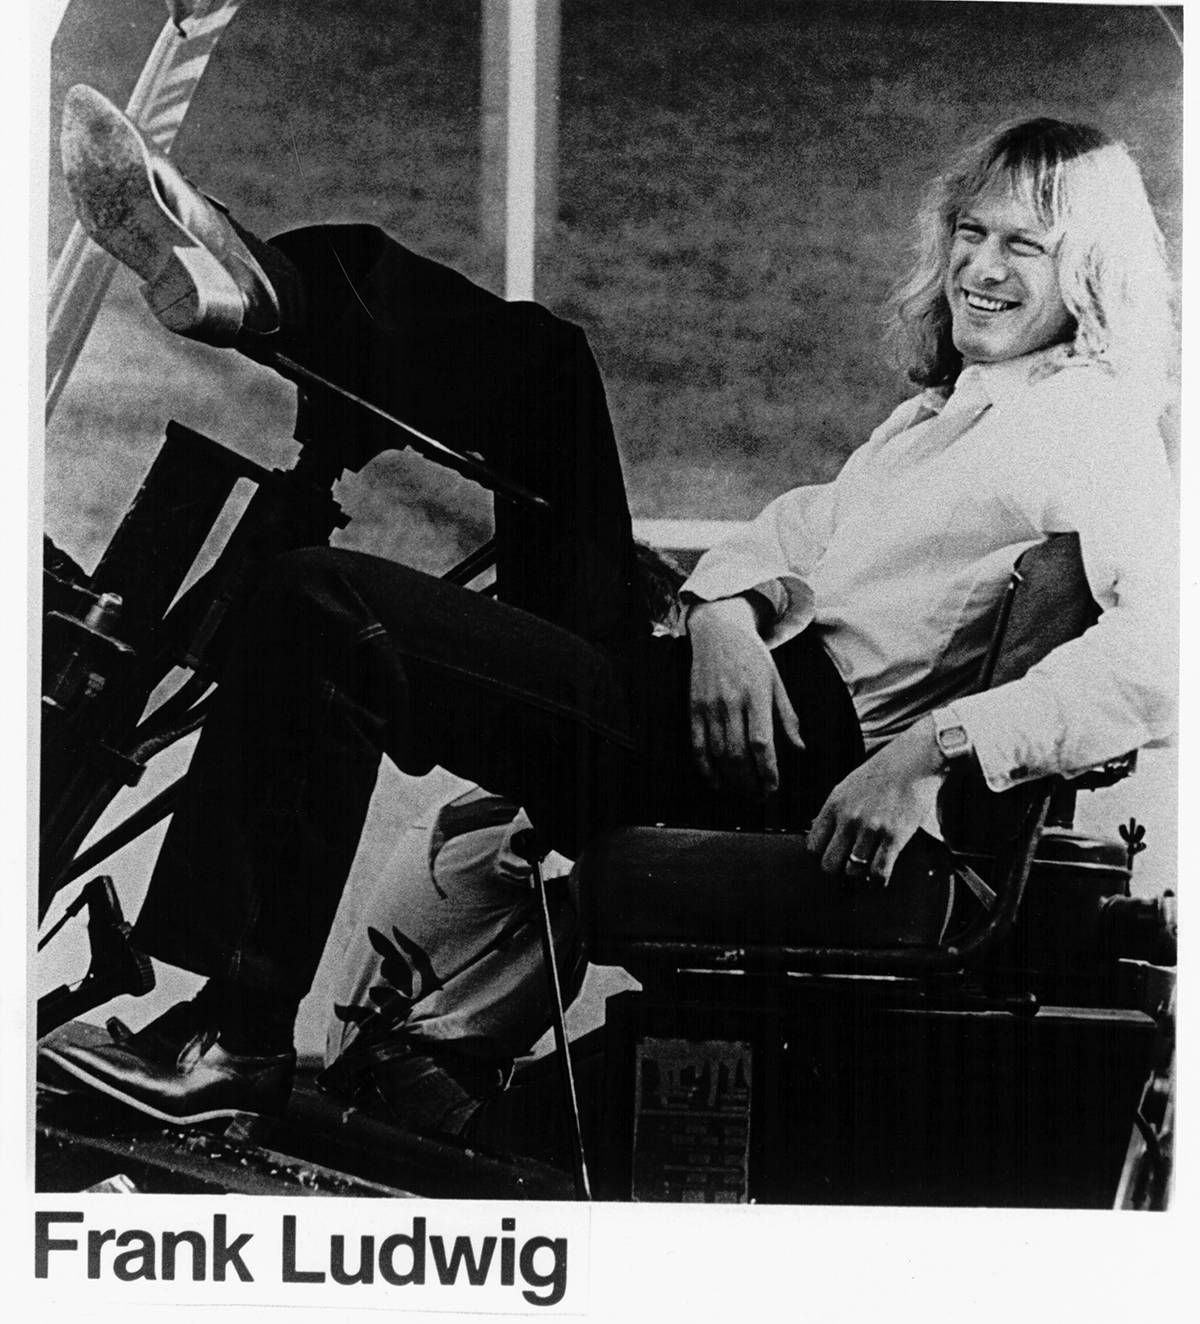 Frank Ludwig in a forklift with his long hair during Trooper's heyday. (Photo submitted)